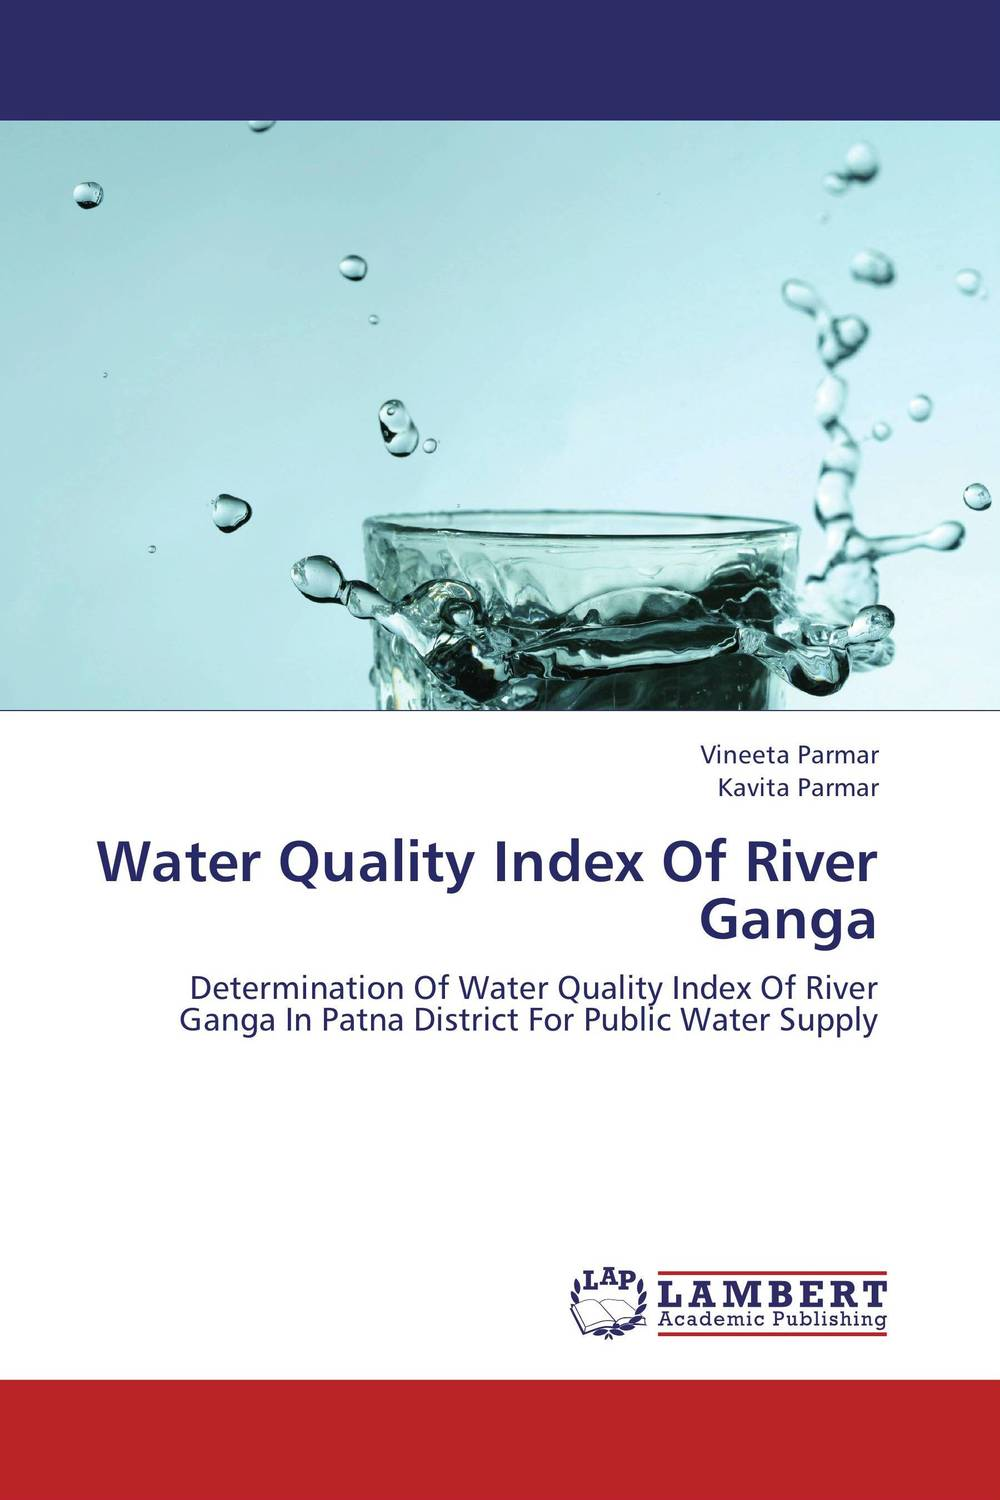 Water Quality Index Of River Ganga effects of dams on river water quality